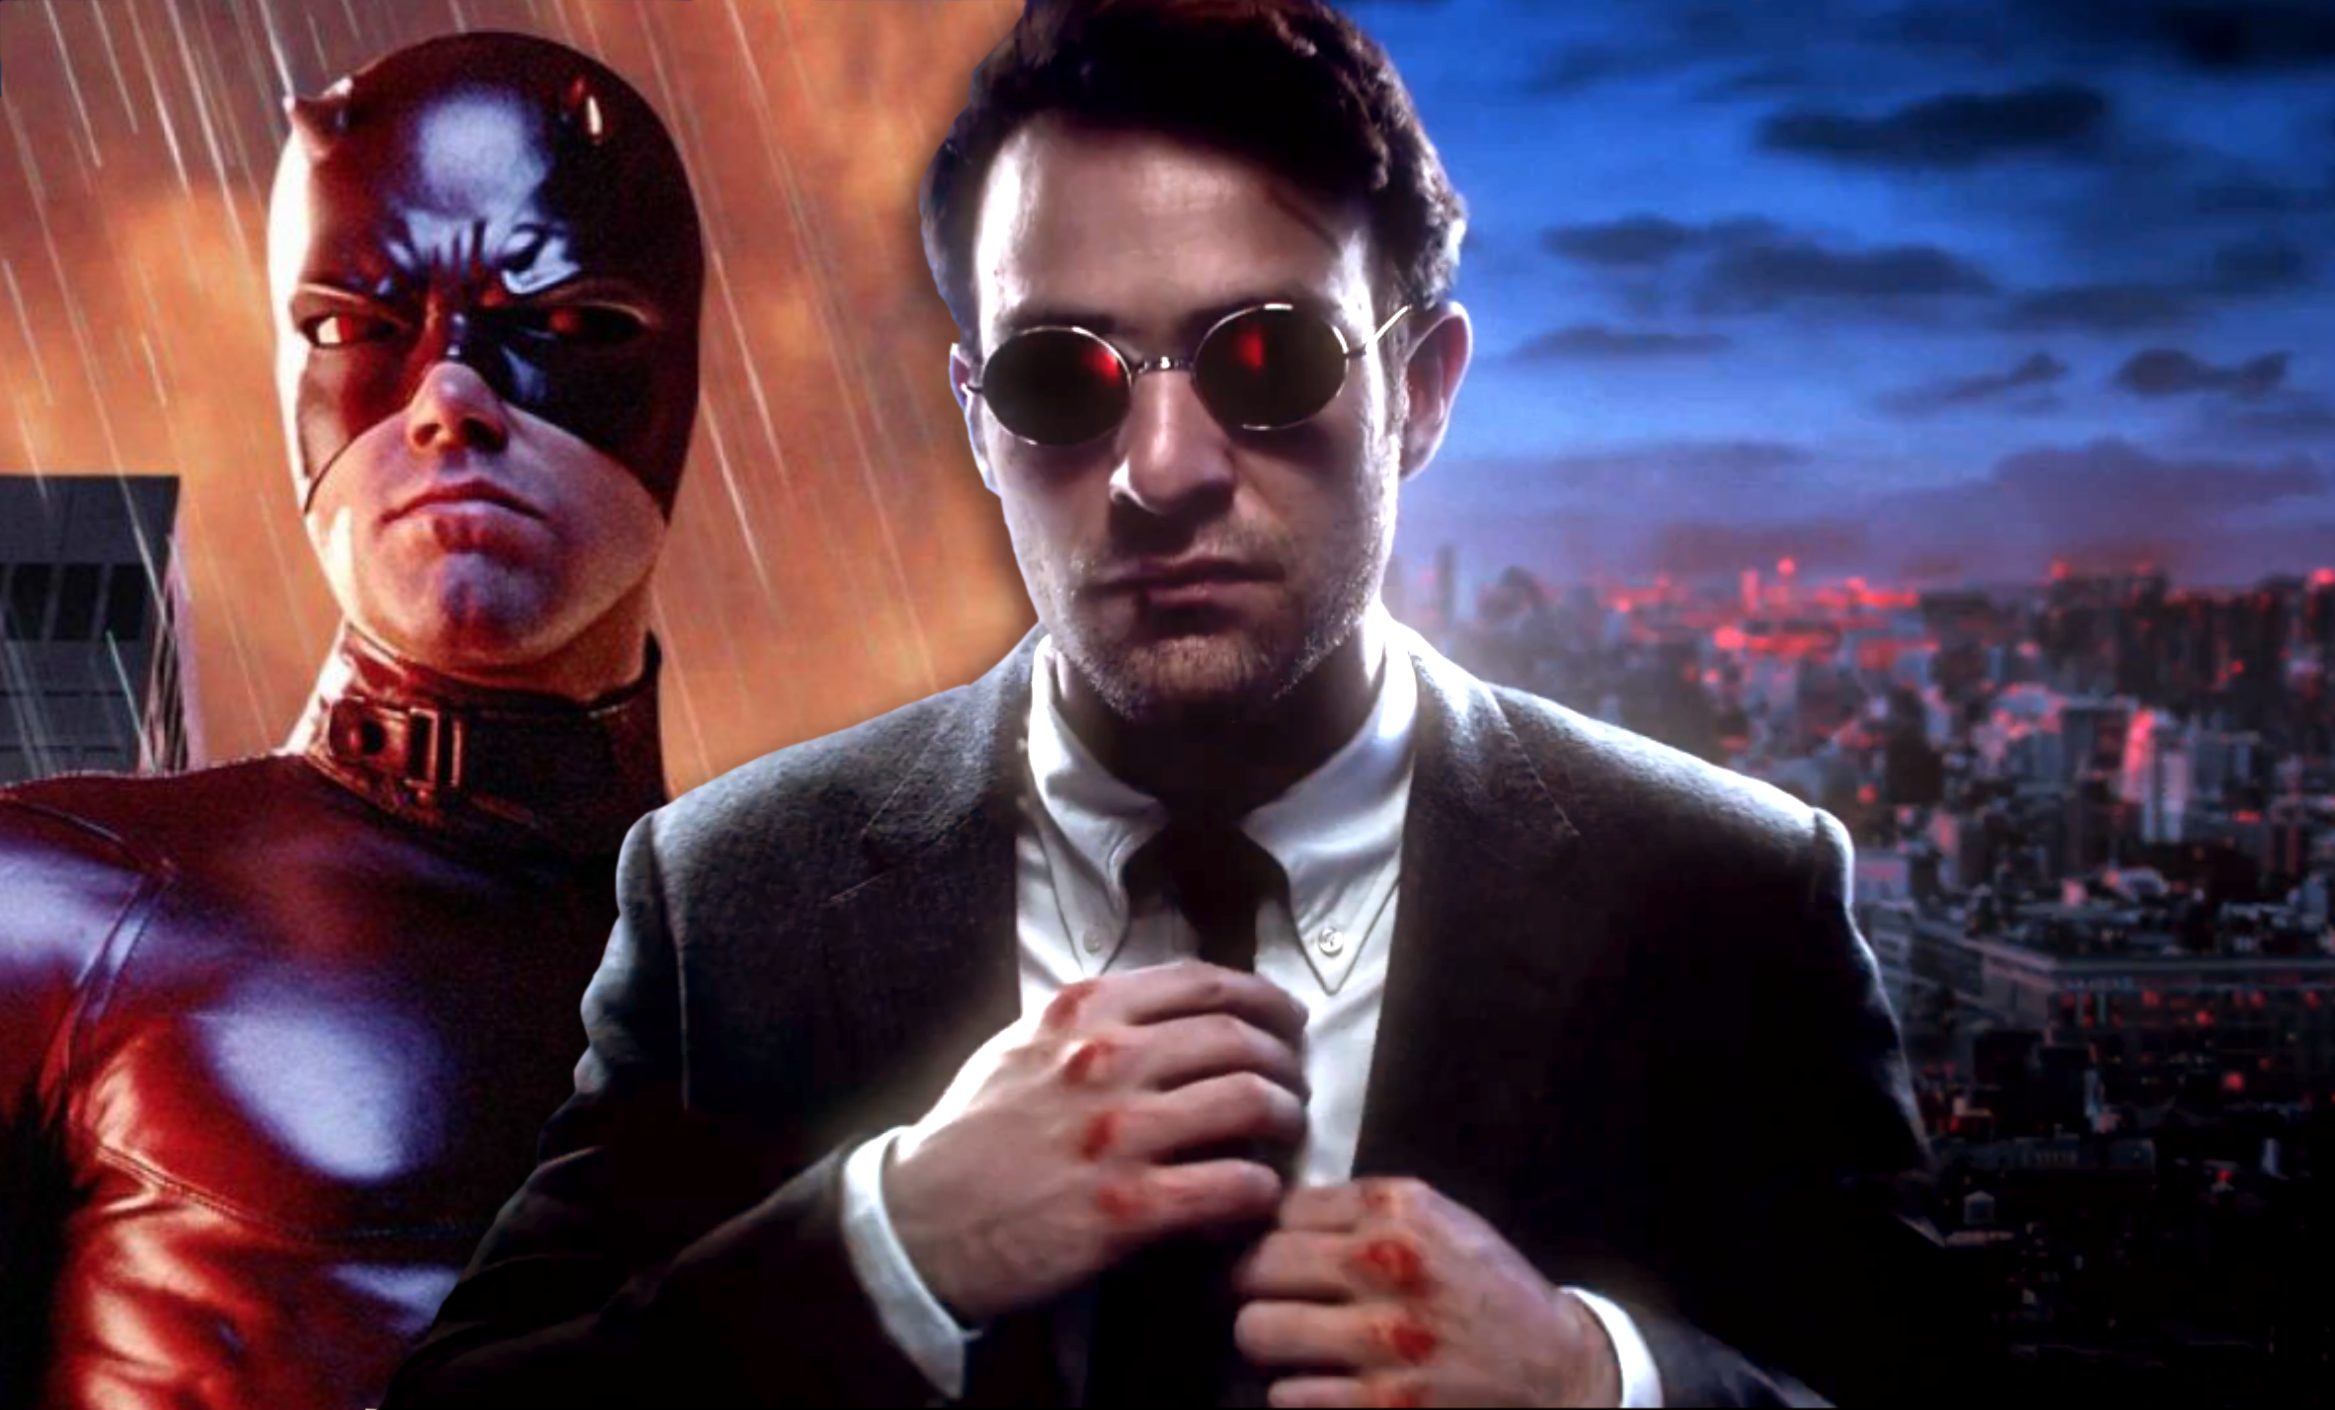 TV's Daredevil Admits He Likes Ben Affleck's 'Daredevil' Movie